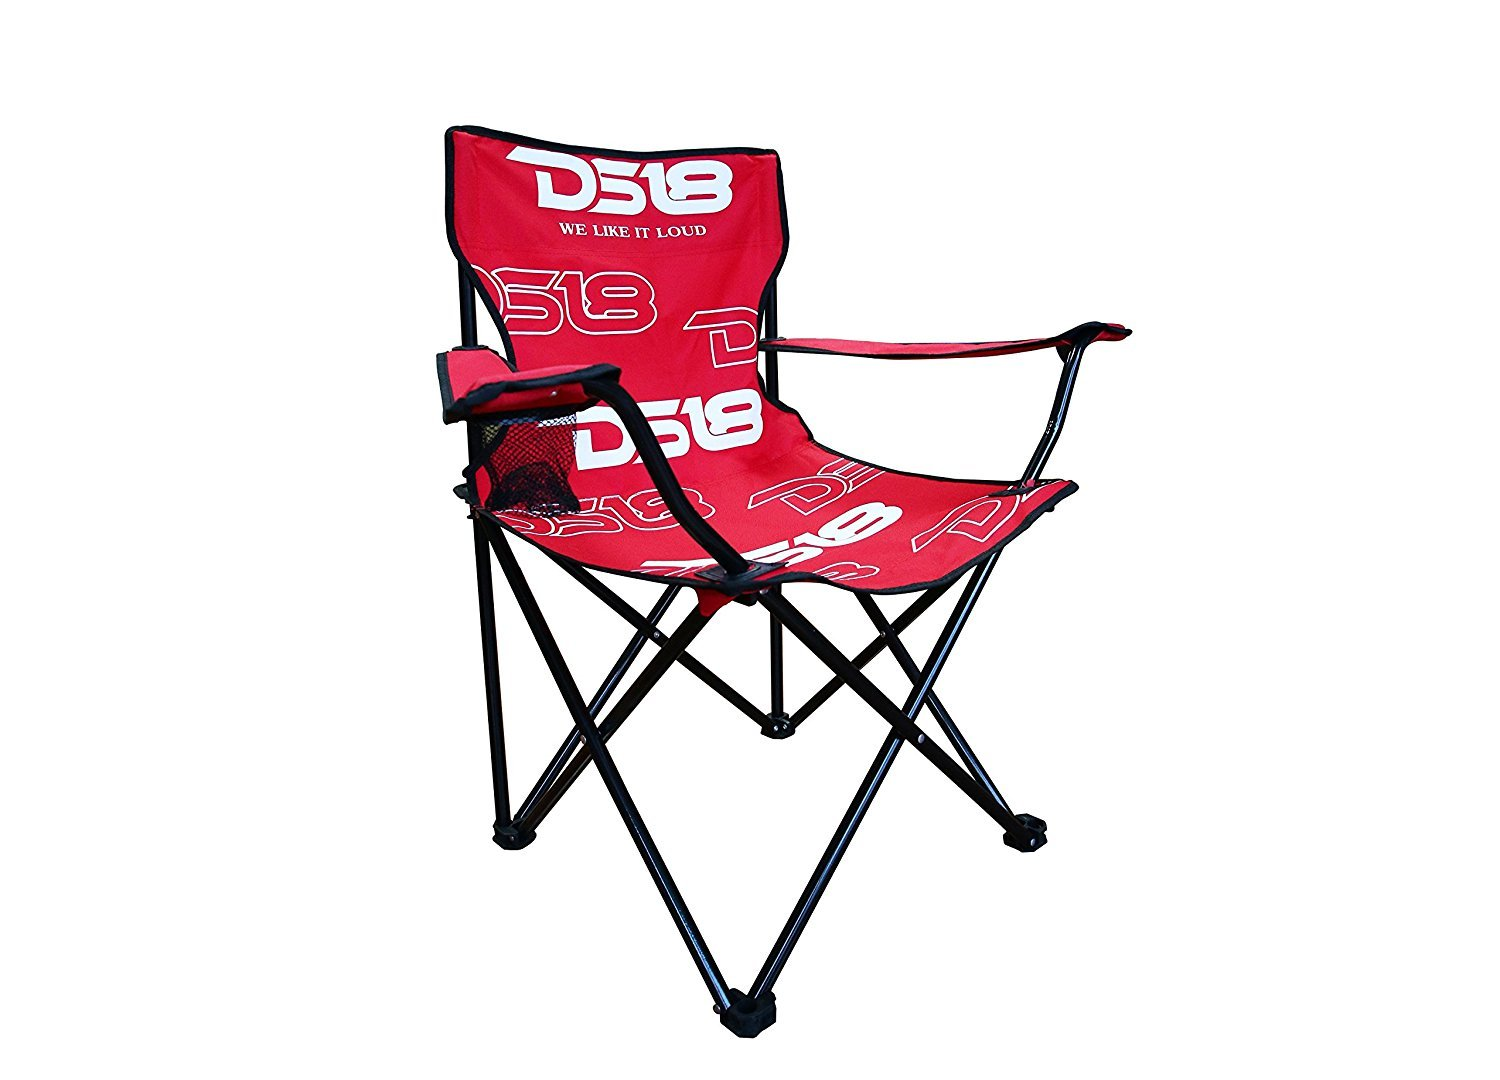 DS18 Portable Folding Chair with Carrying Bag [並行輸入品] B0784GY13X